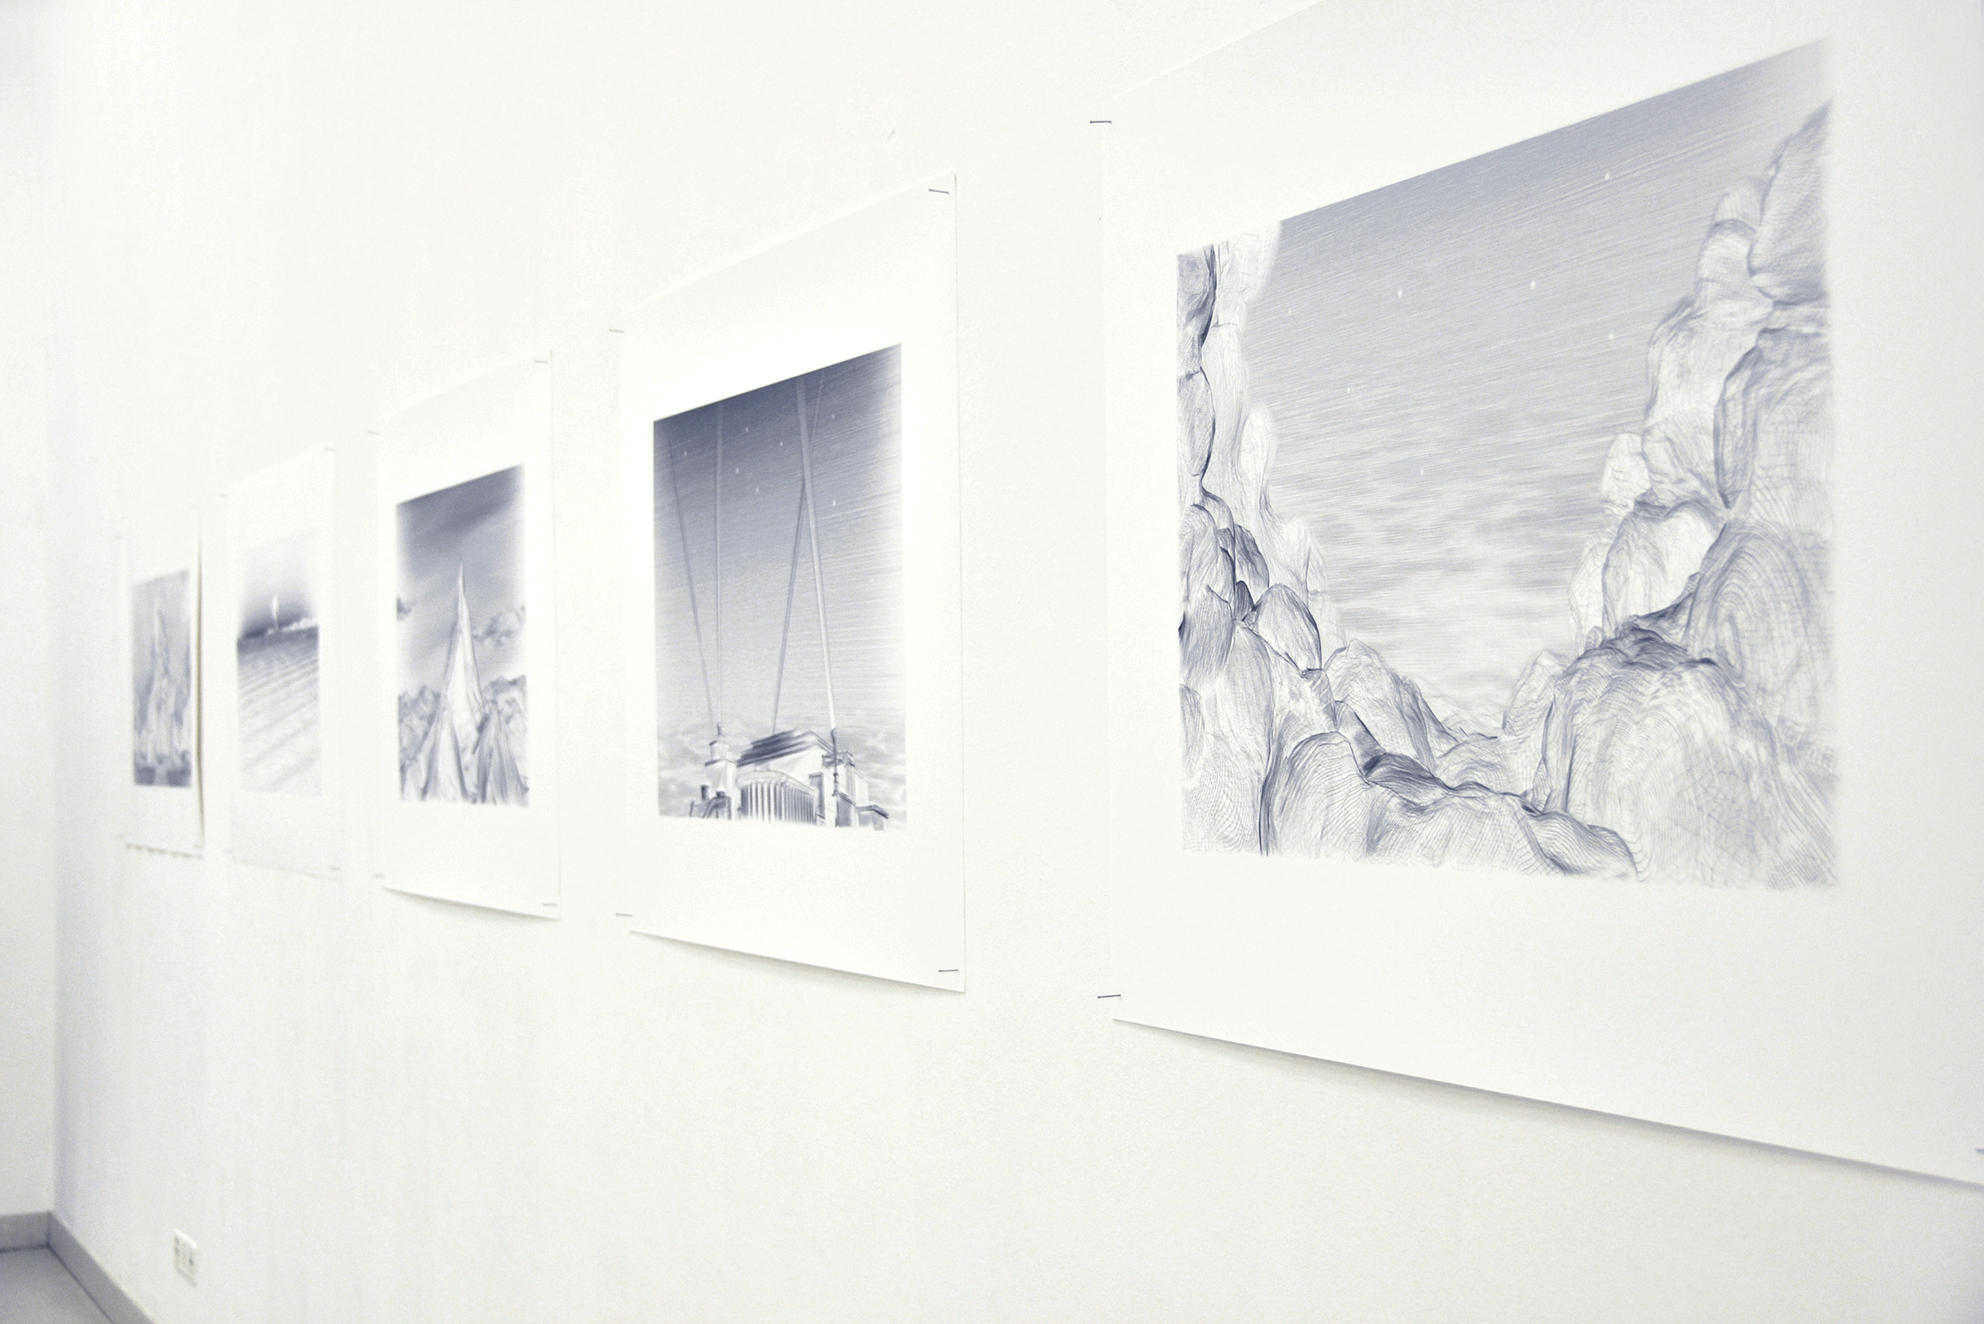 Series of 5 digital 'drawings', inkjet print / black wooden frame and glass, 80 x 120 x 4 cm, 2009, in collaboration with Swann Thommen